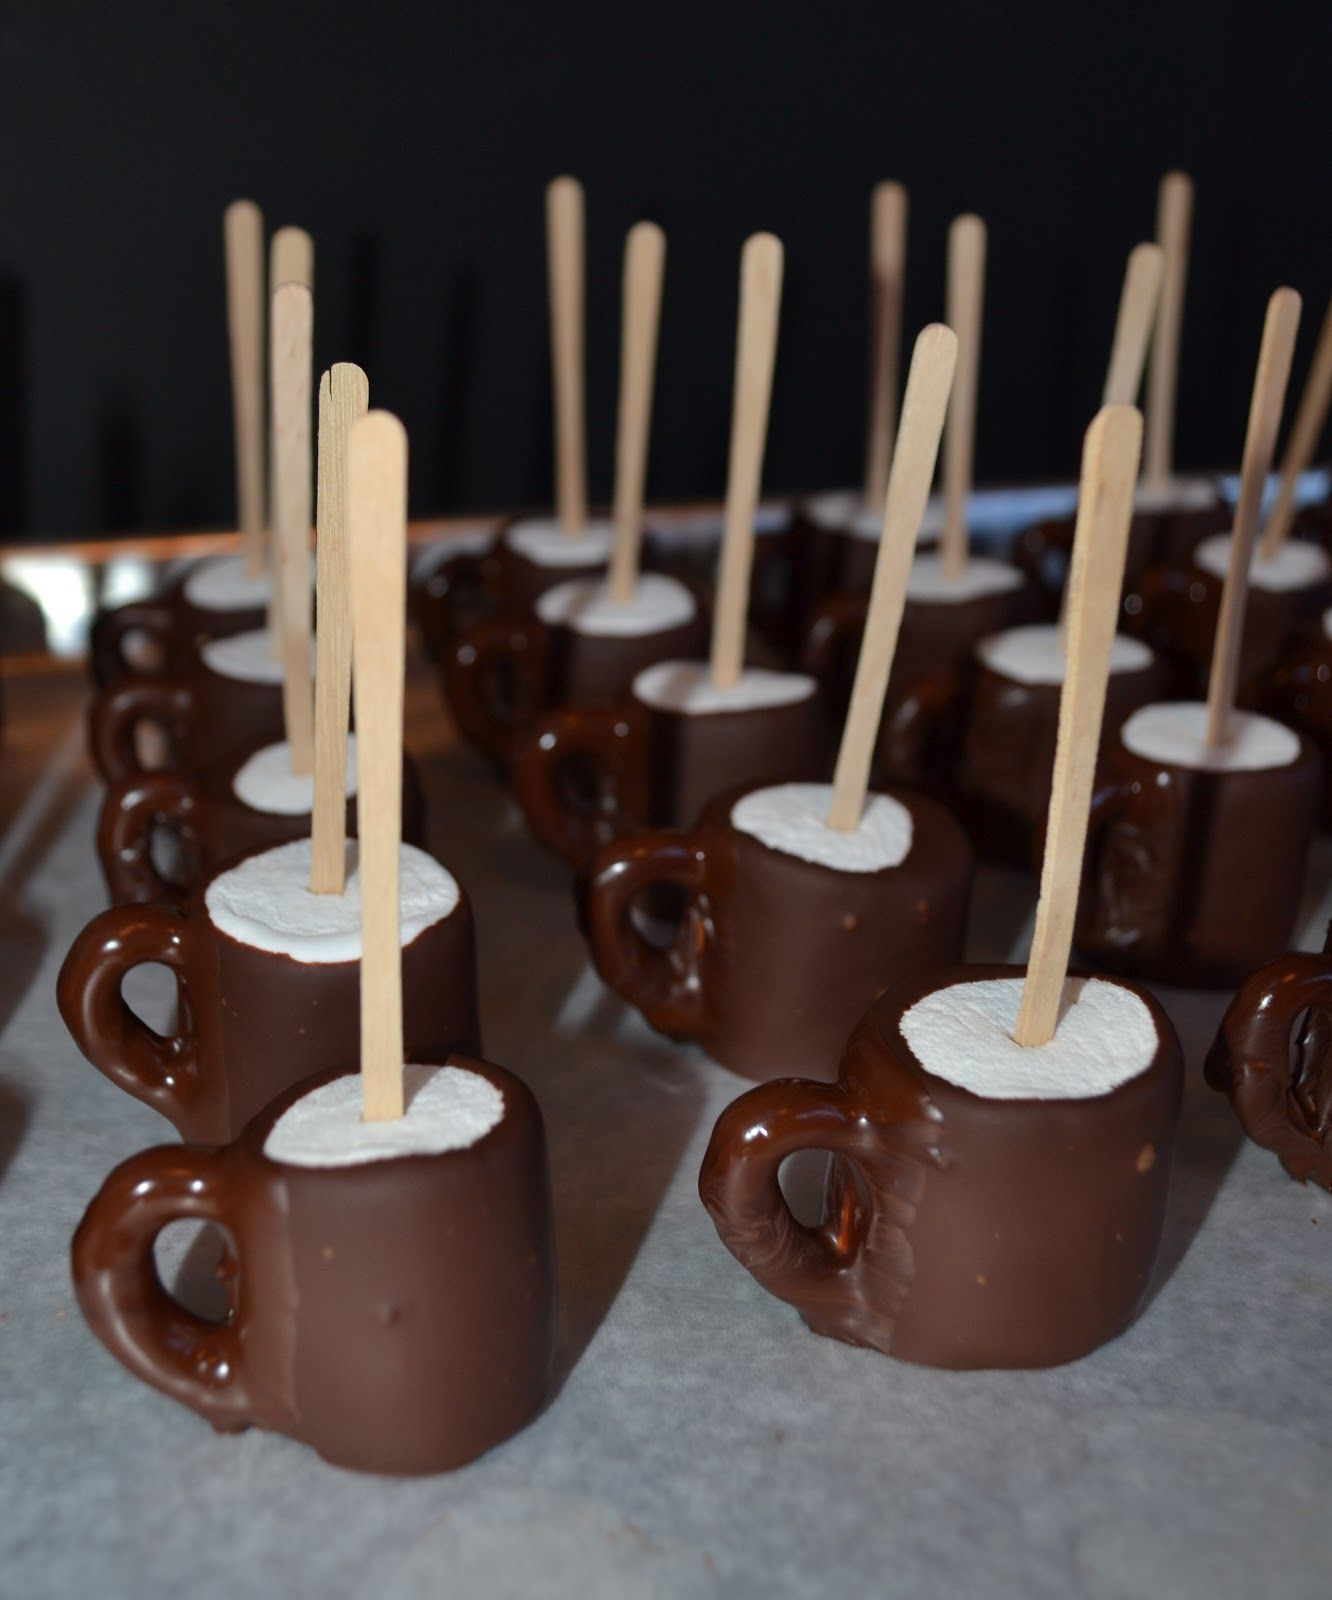 "*Rook No. 17: recipes, crafts & whimsies for spreading joy*: Chocolate Dipped Marshmallow ""Elf"" Mugs ~ A Delightful and Diminutive Holiday Treat"